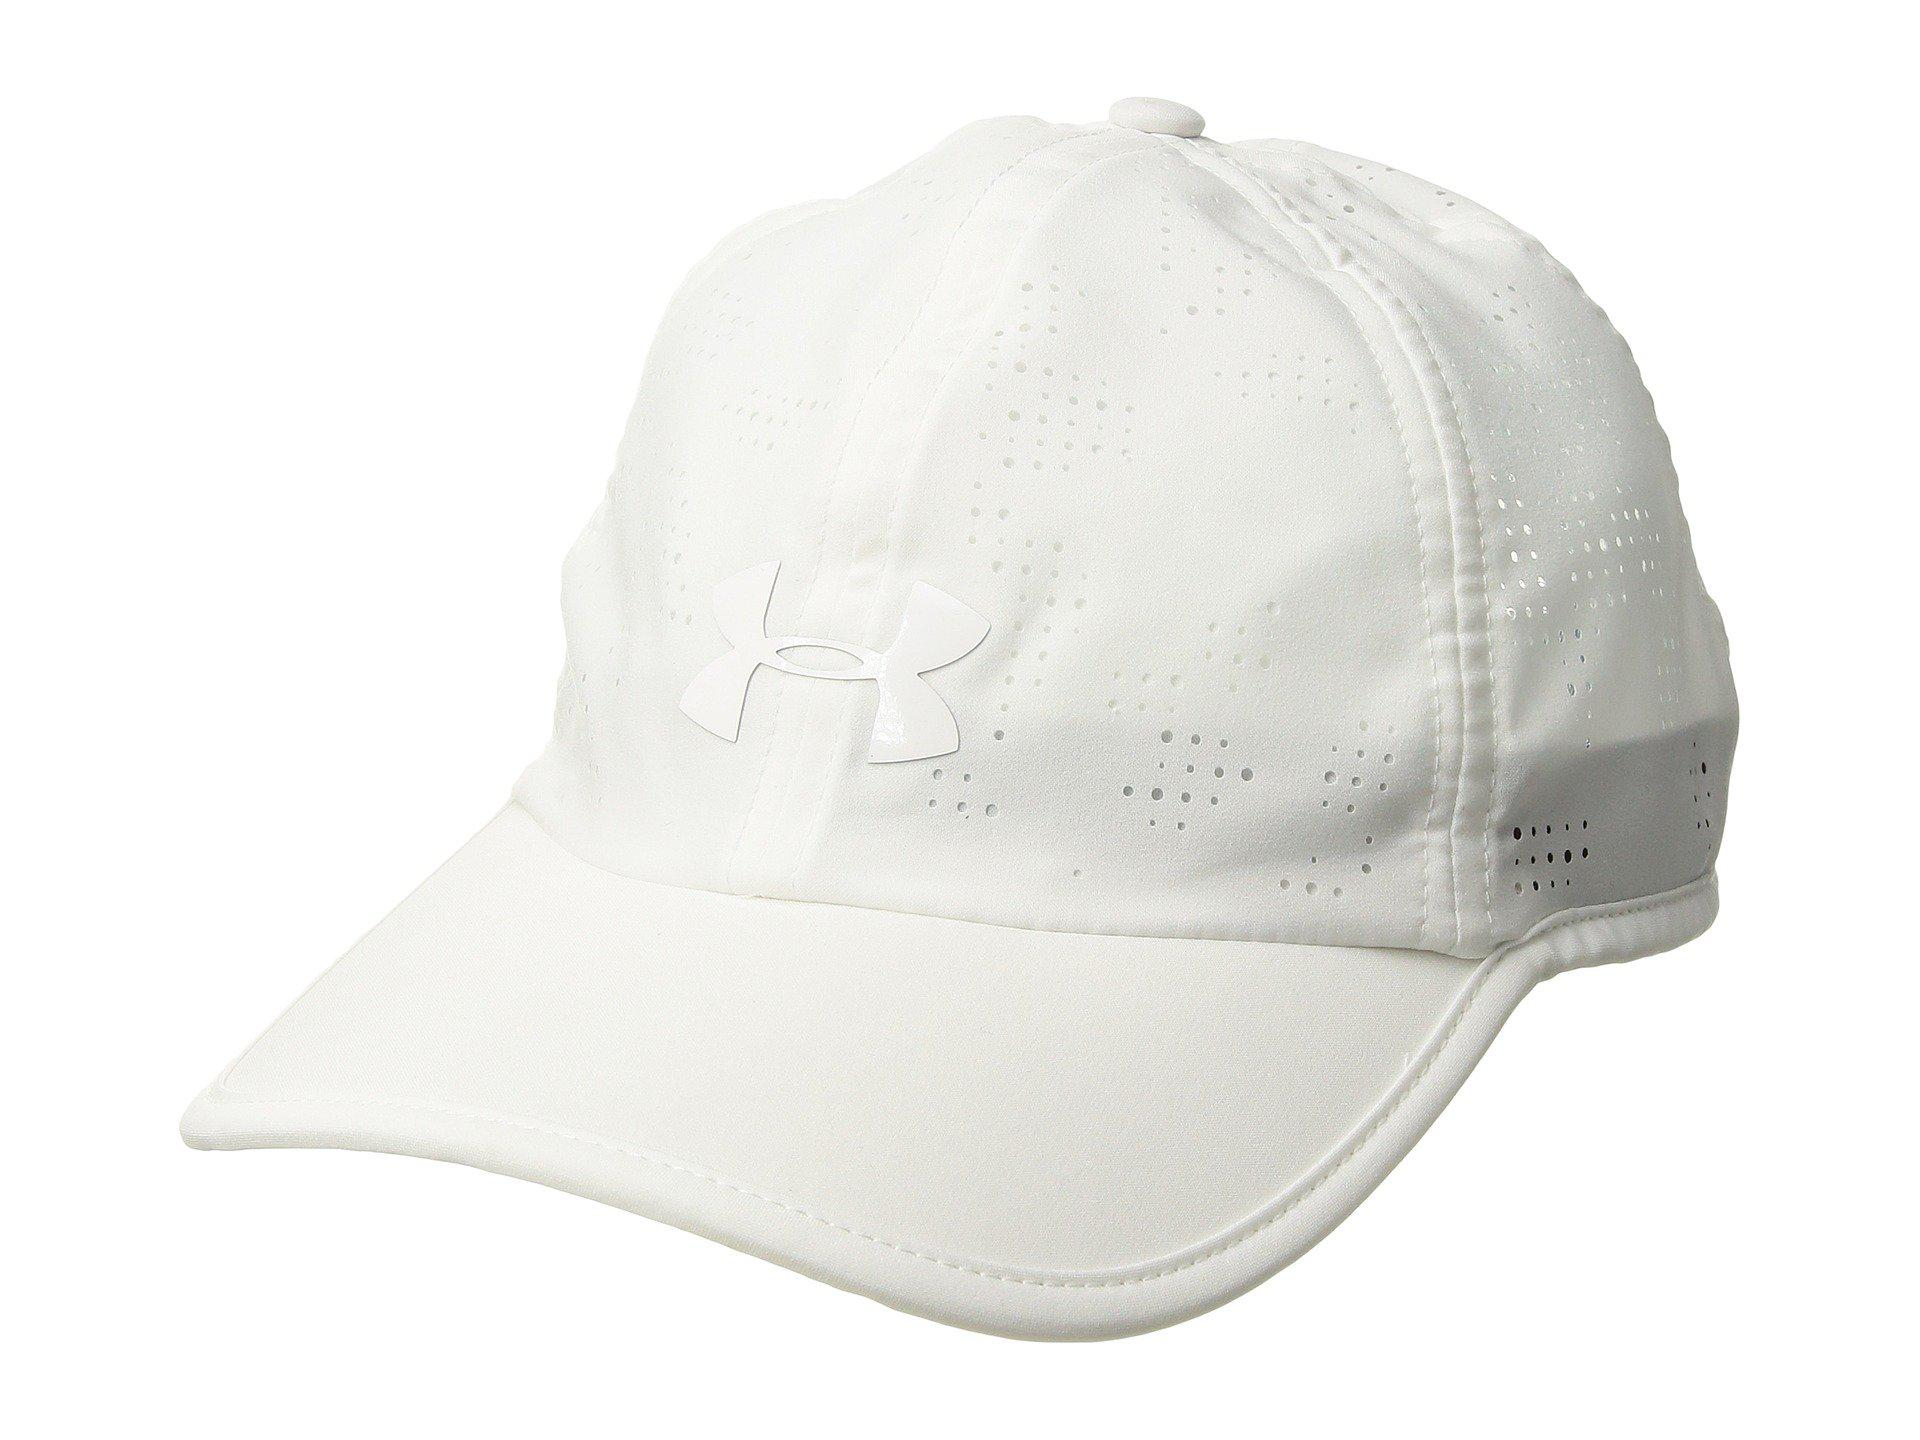 50156067fc4 Lyst - Under Armour Perforated Golf Cap in White for Men